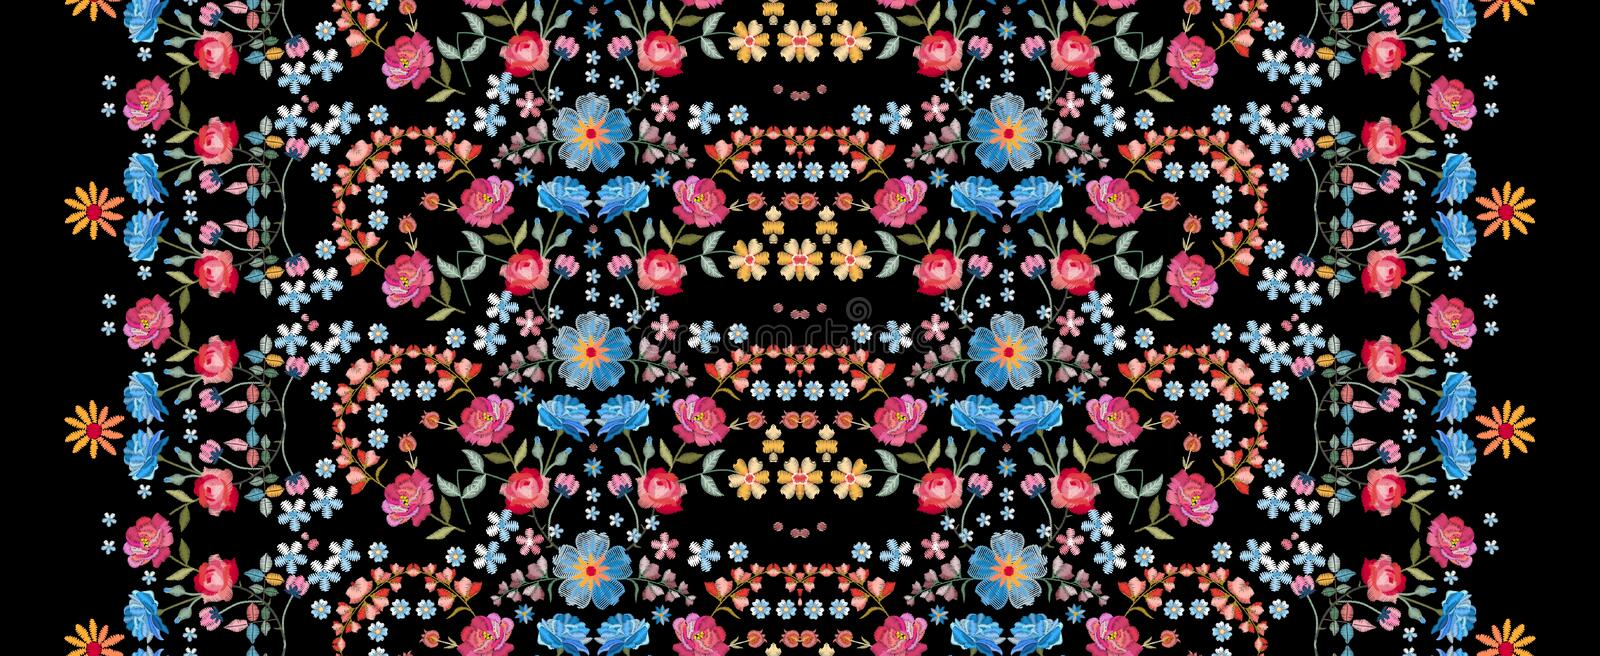 Embroidery seamless pattern. Beautiful vertical line with colorful summer flowers on black background. Embroidered print. stock illustration